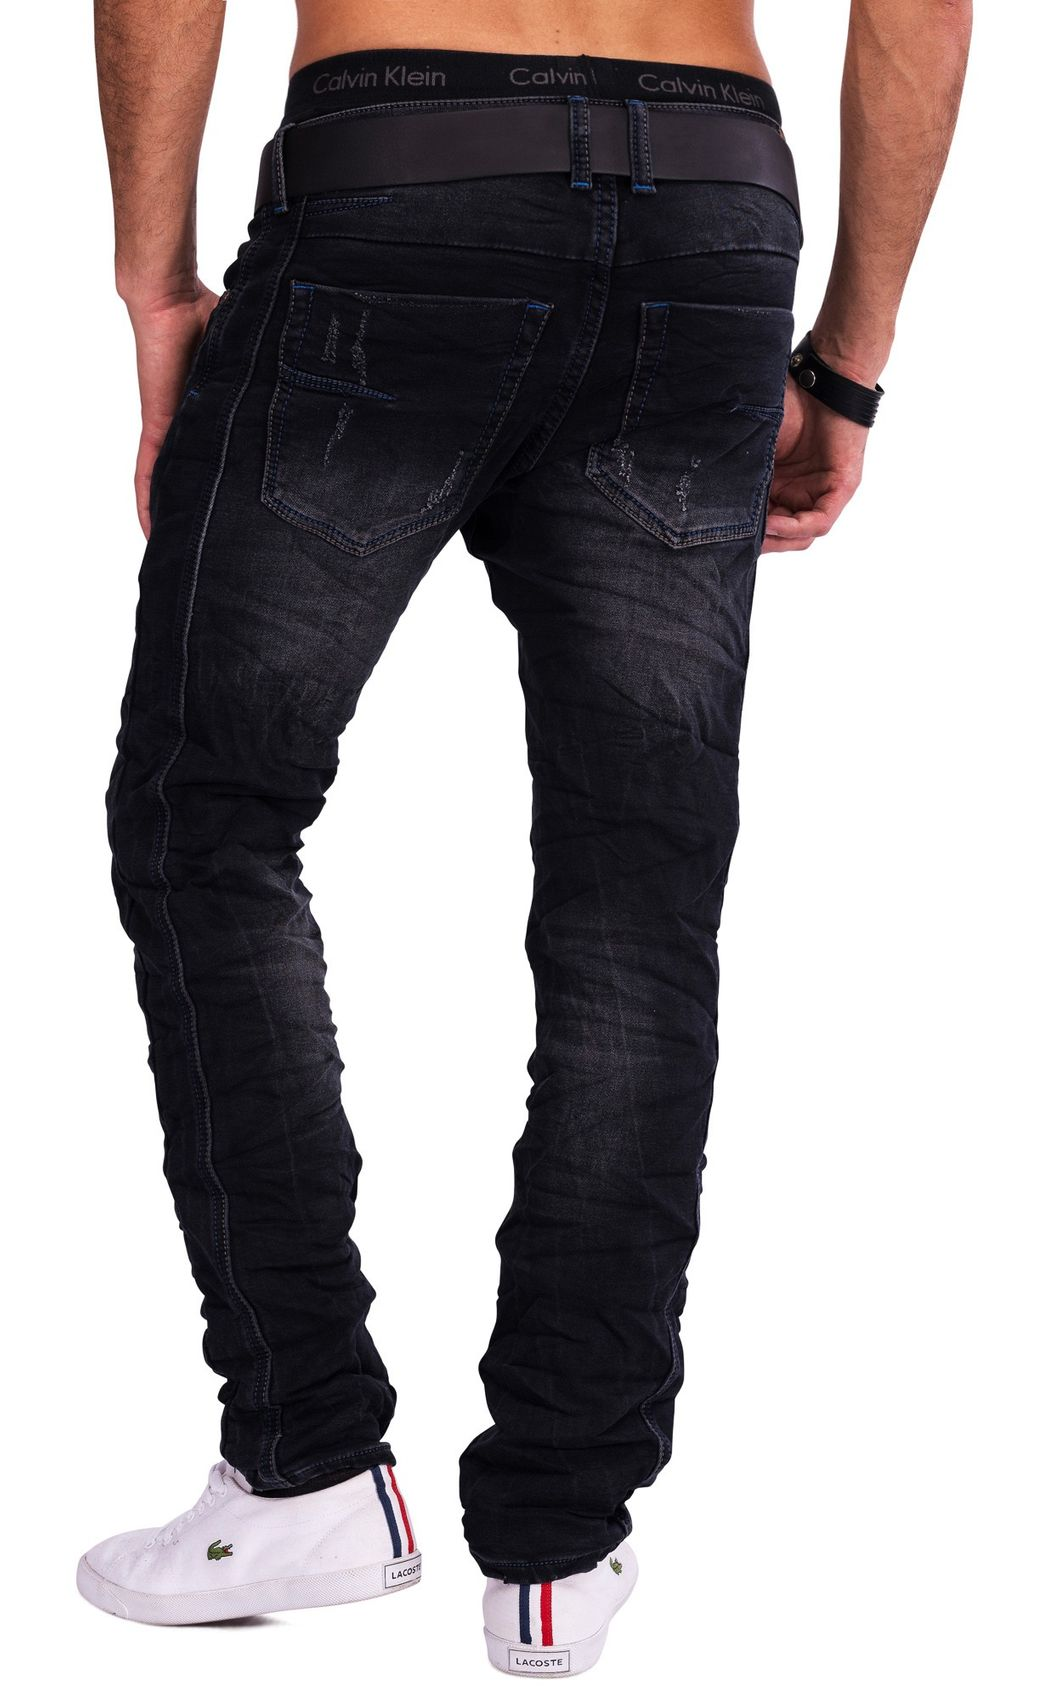 herren one public jeans dawn schwarz destroyed denim slim fit zerissen used look ebay. Black Bedroom Furniture Sets. Home Design Ideas